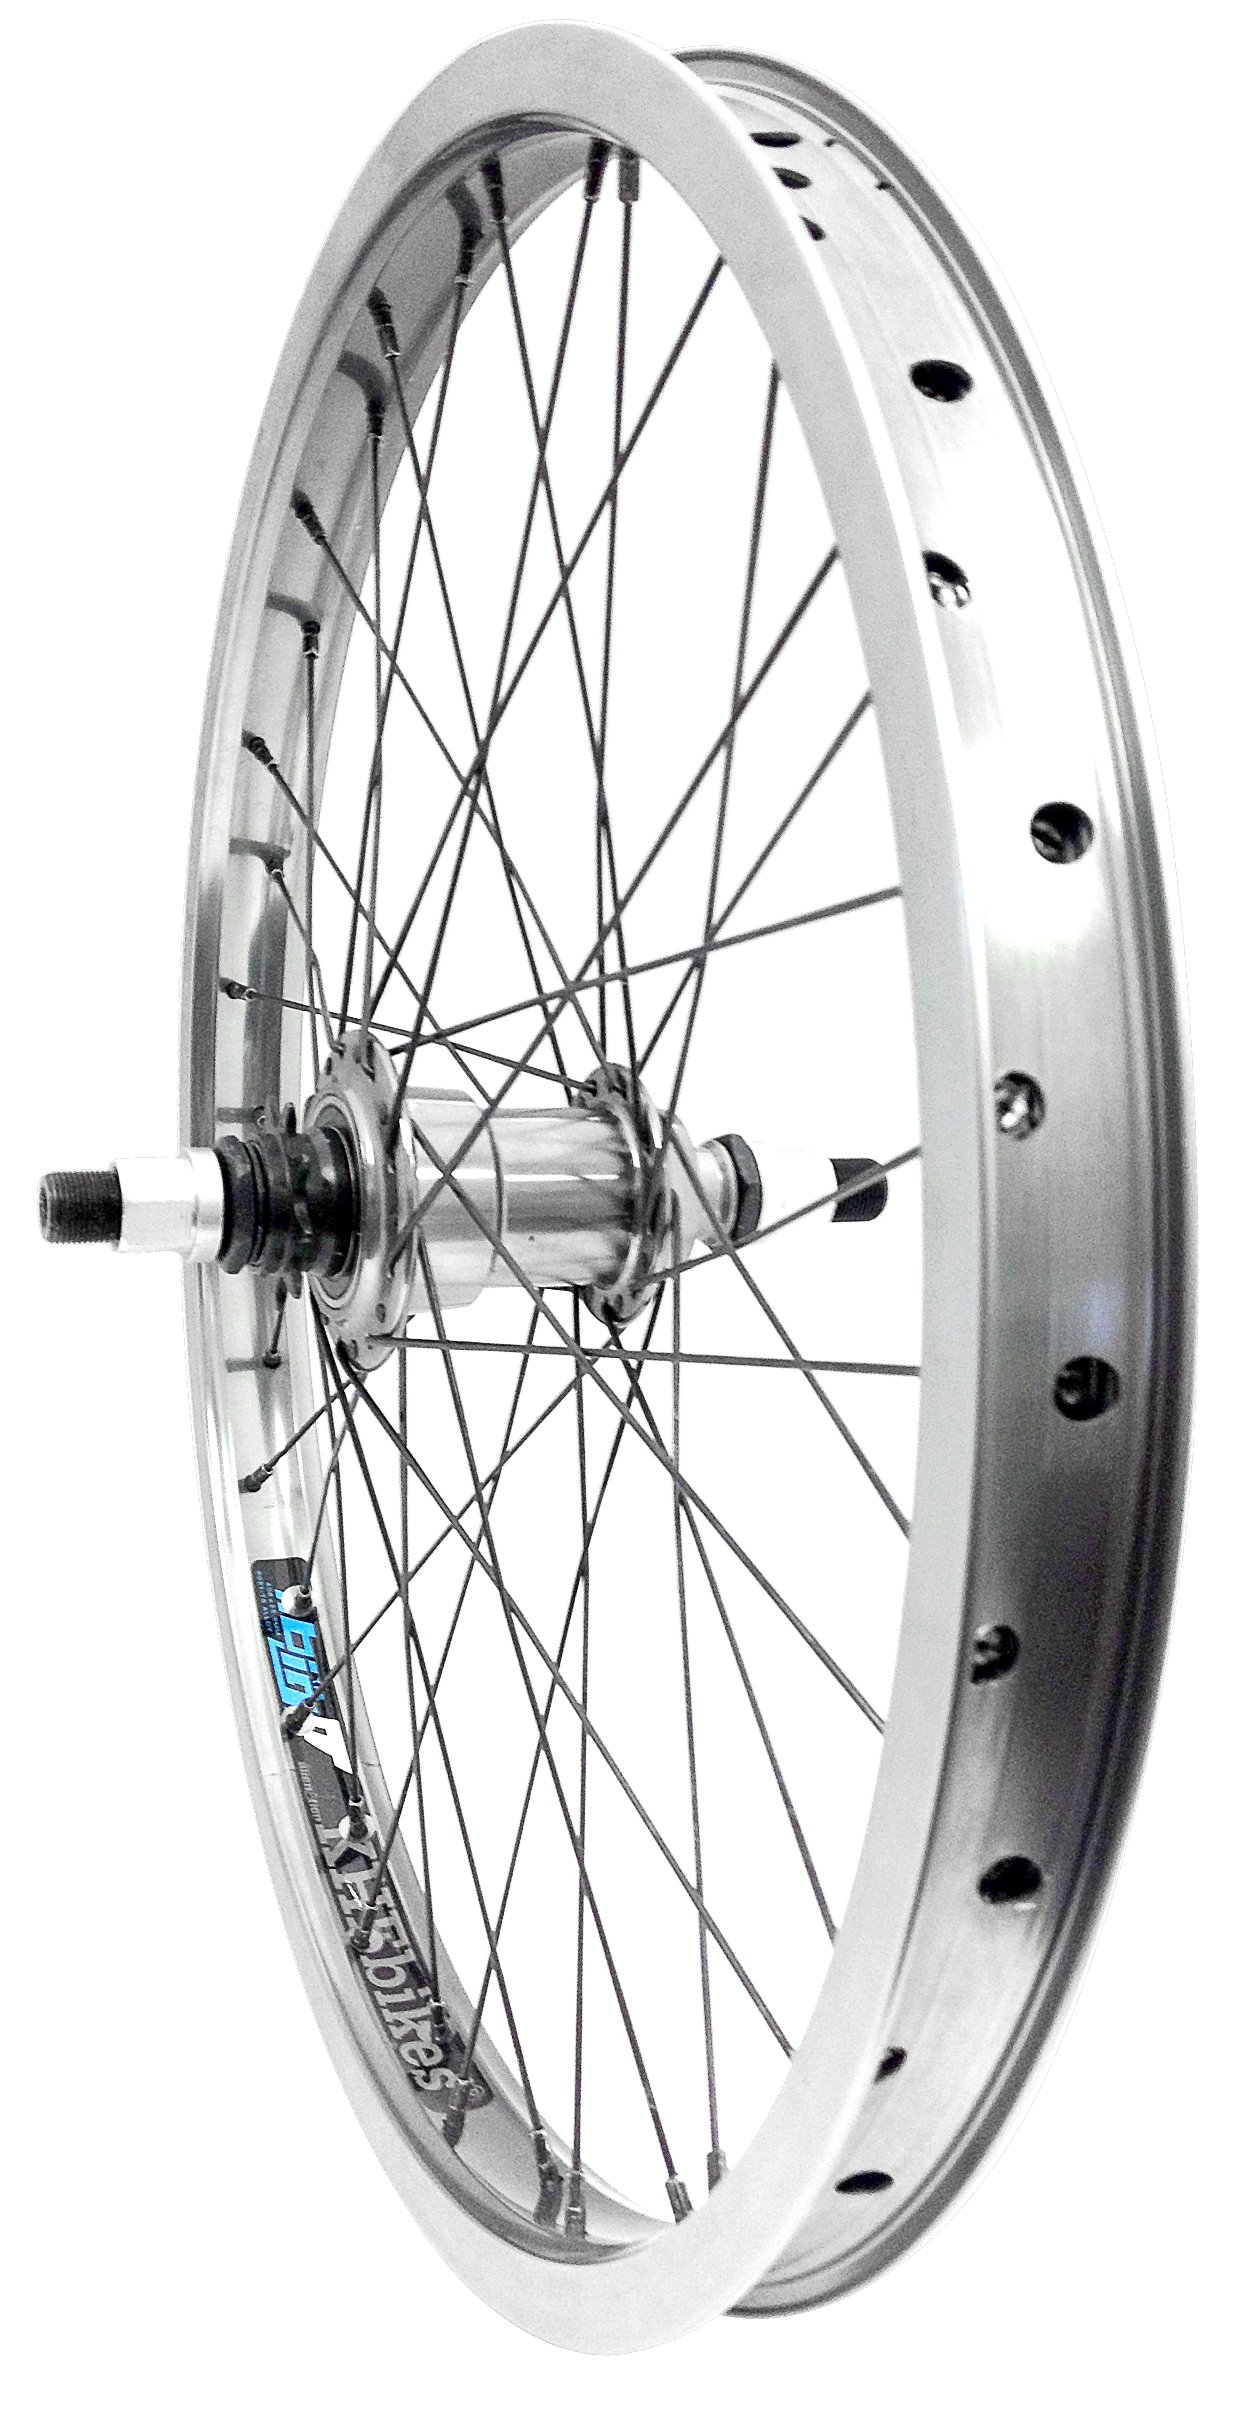 KHE Streetfreeco BMX Rear Wheel